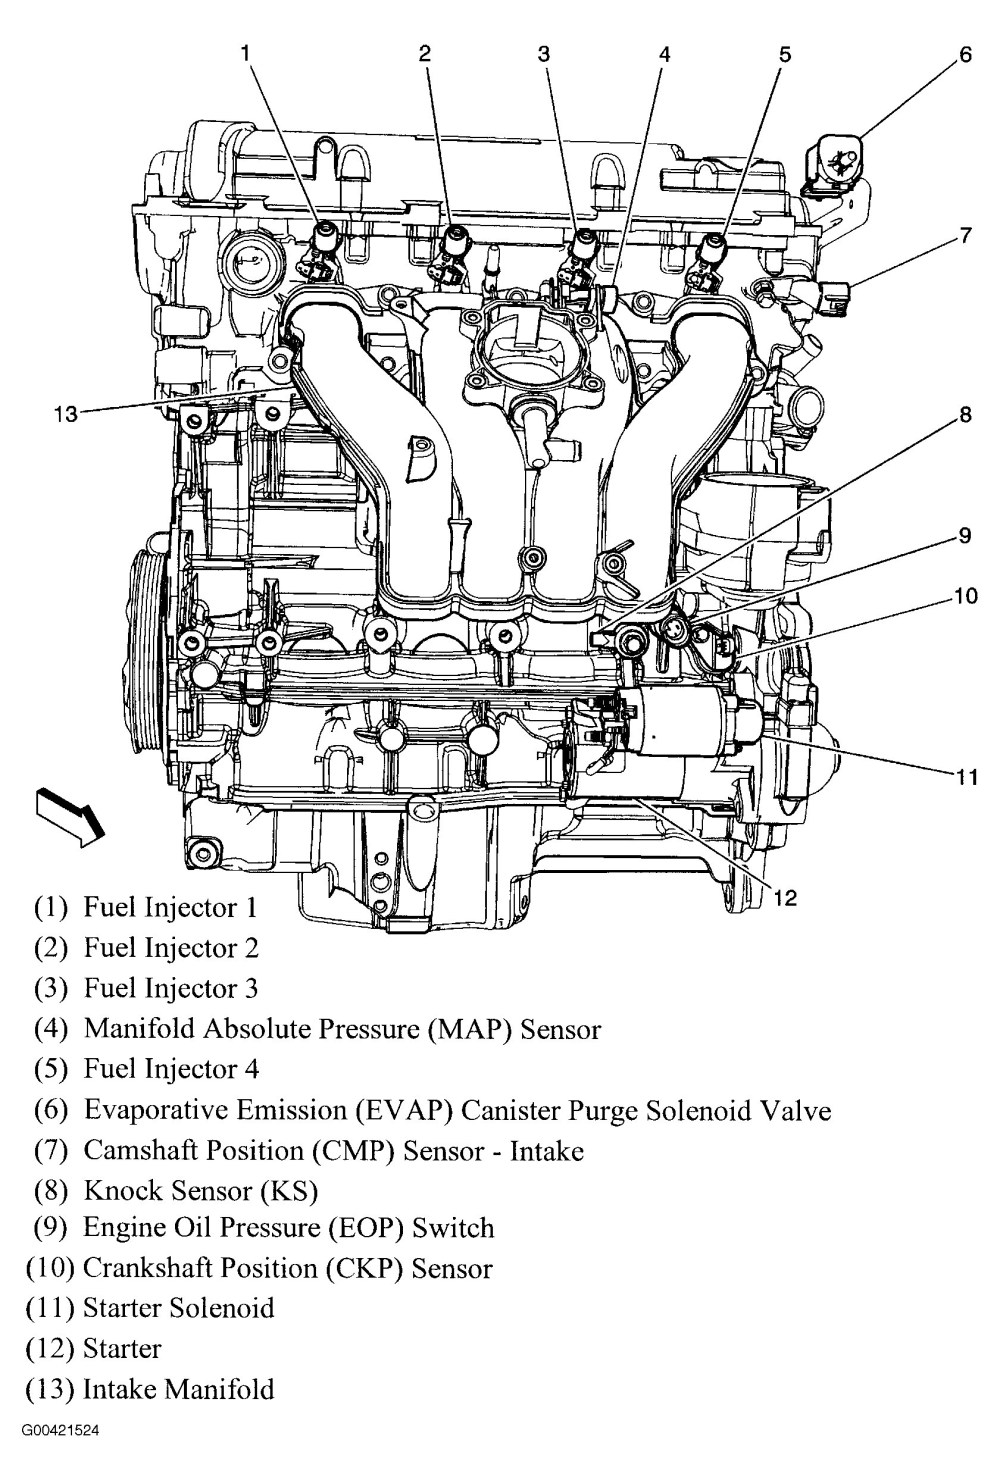 medium resolution of 2003 s10 engine diagram wiring diagram article vacuum diagram for 2003 chevy s10 2 2 car tuning